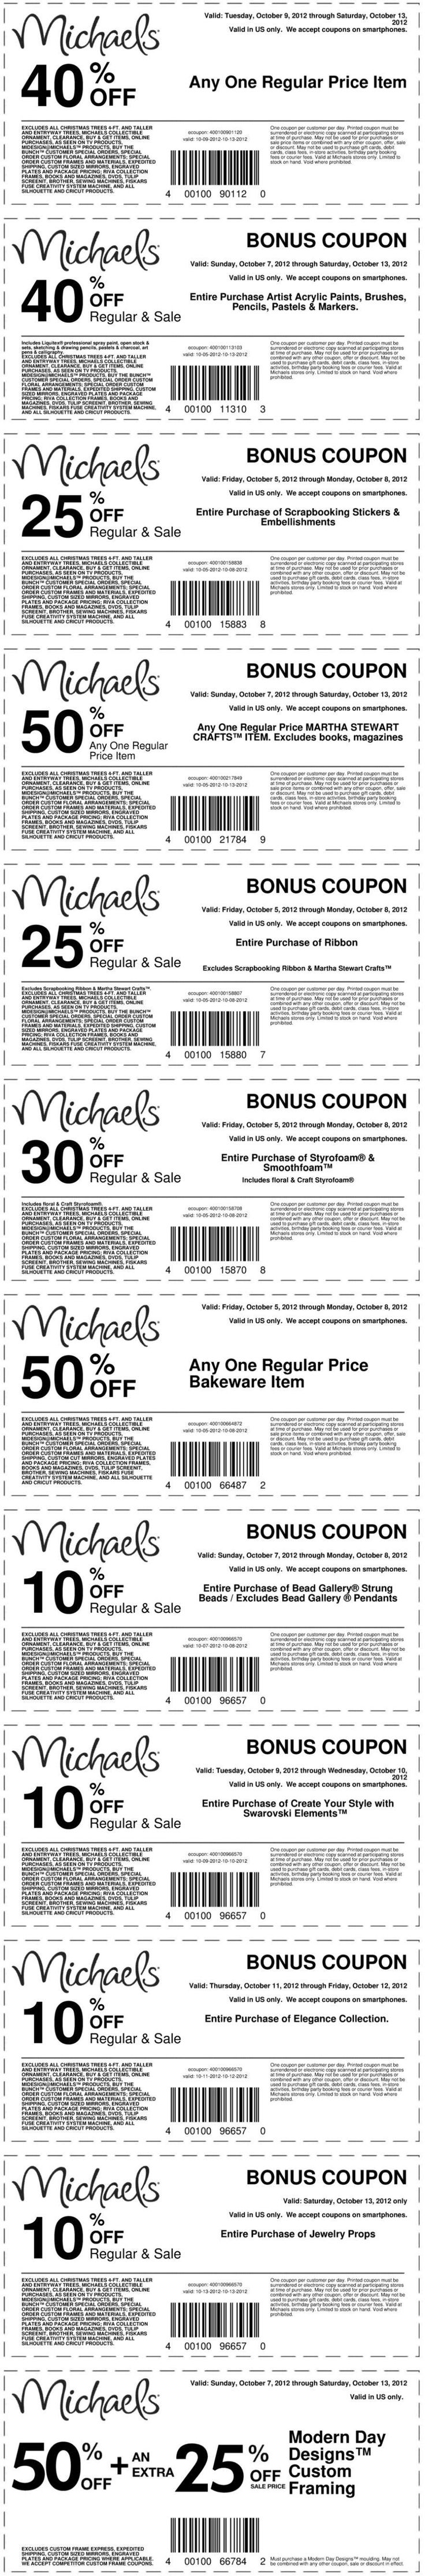 Create and craft coupons - 40 Off A Single Item And More At Michaels Crafts Coupon Via The Coupons App